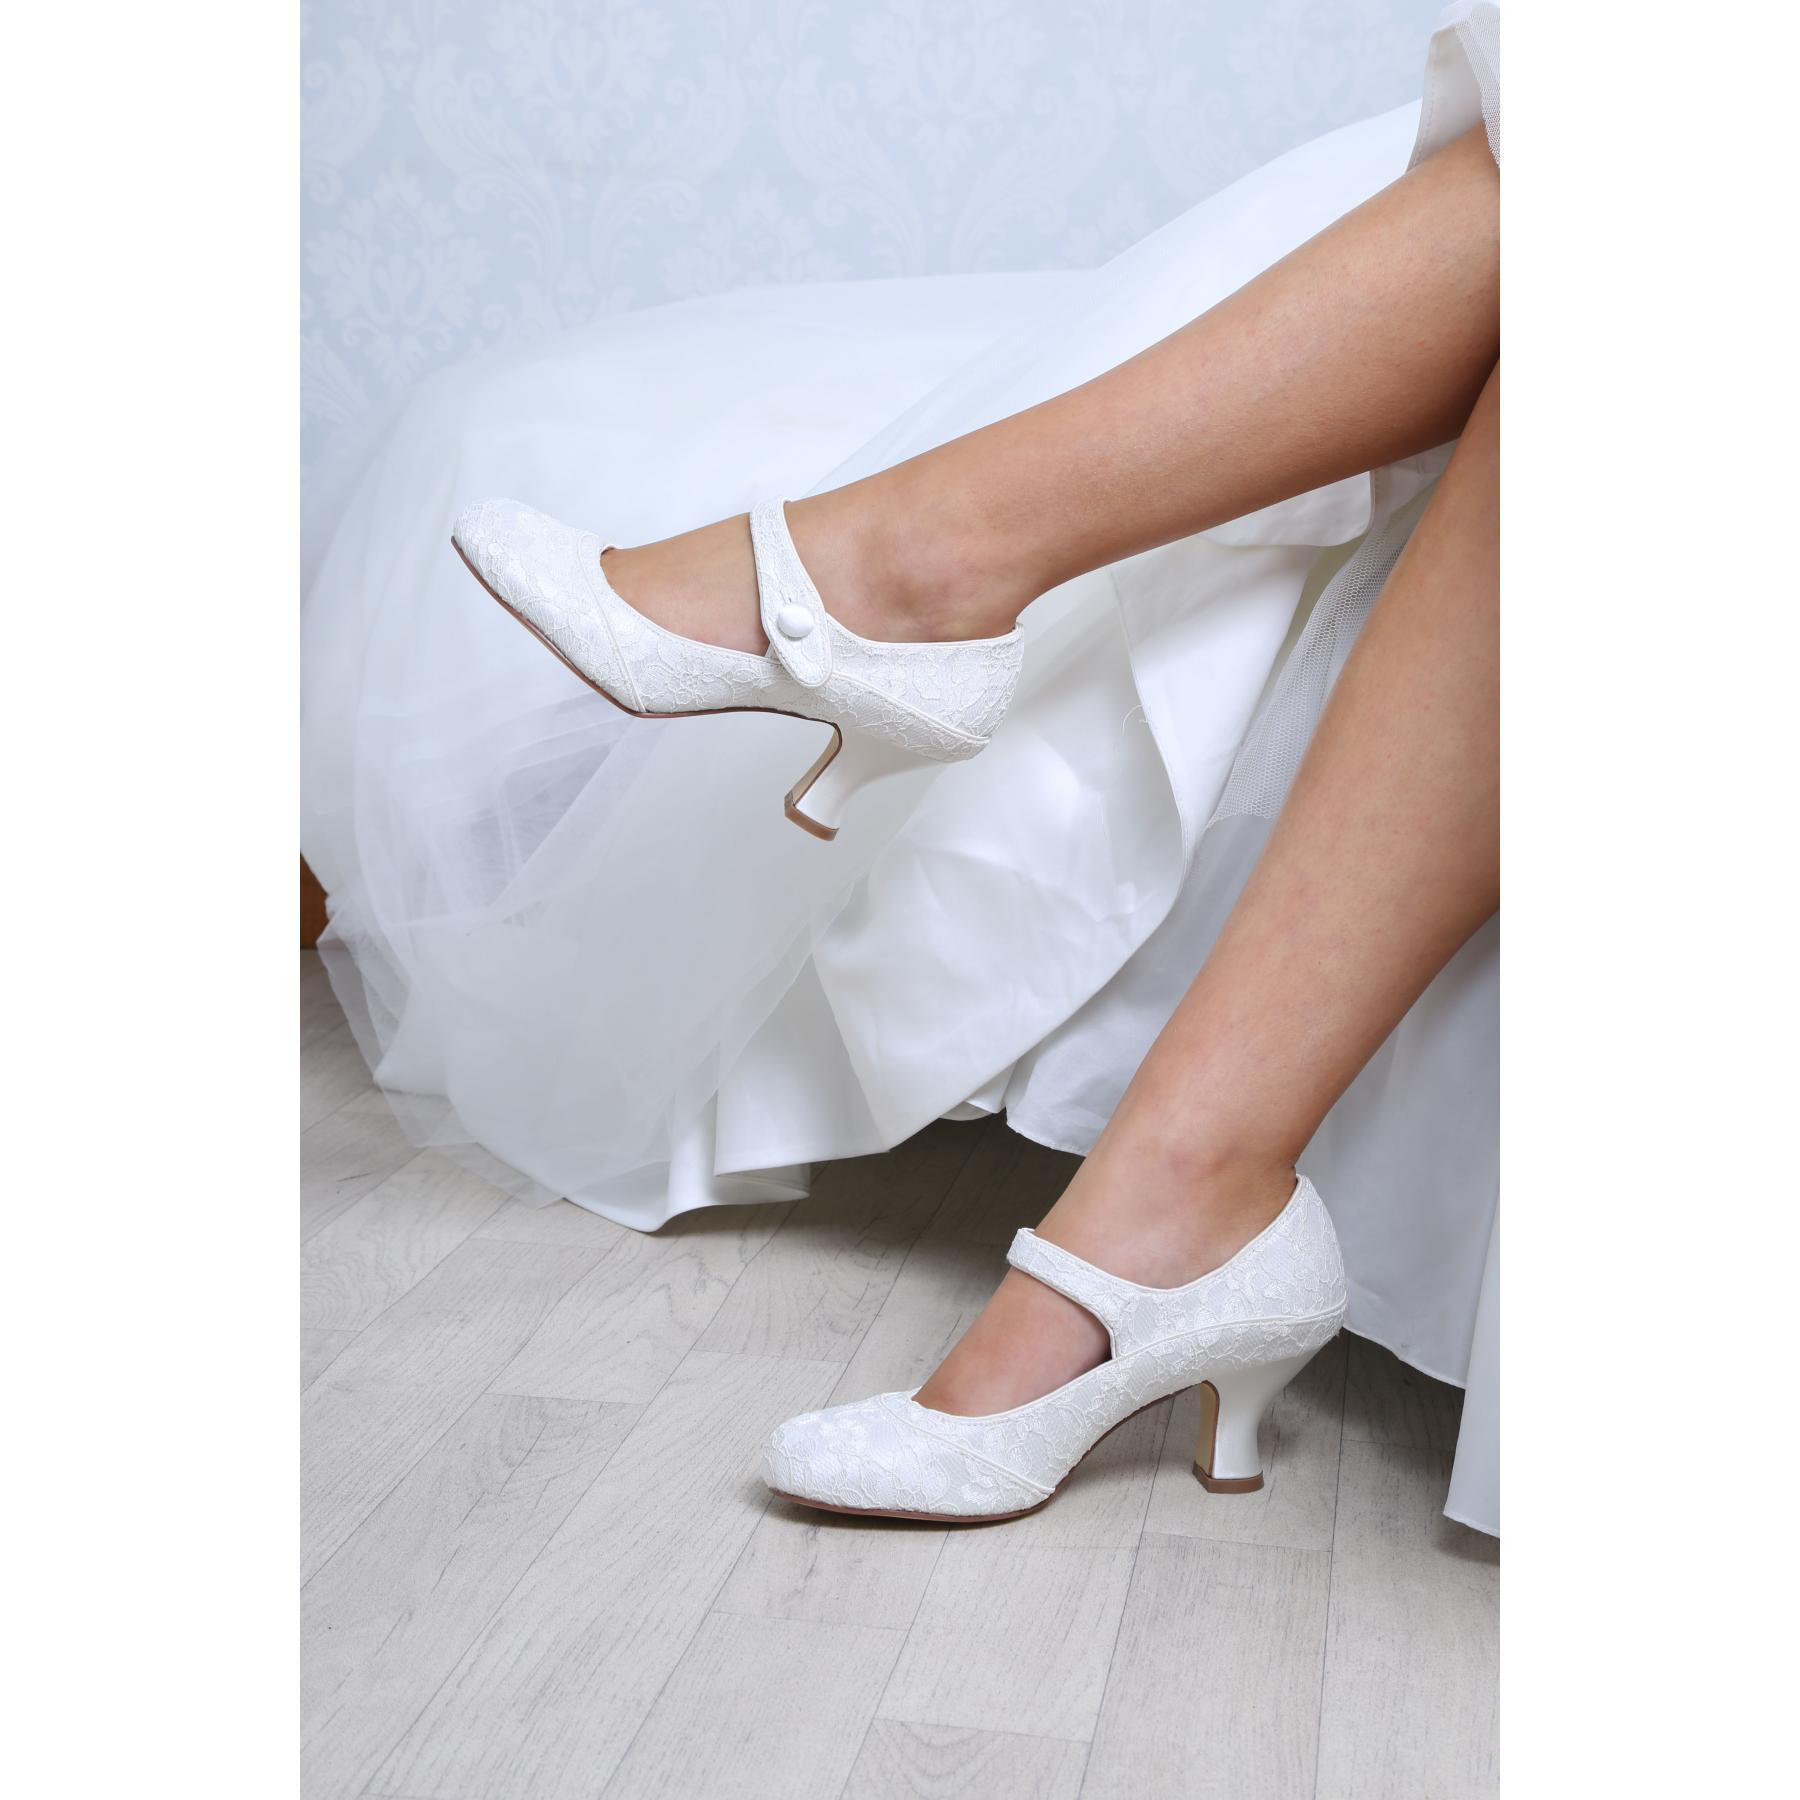 Perfect Bridal Esta Shoes - Ivory Lace